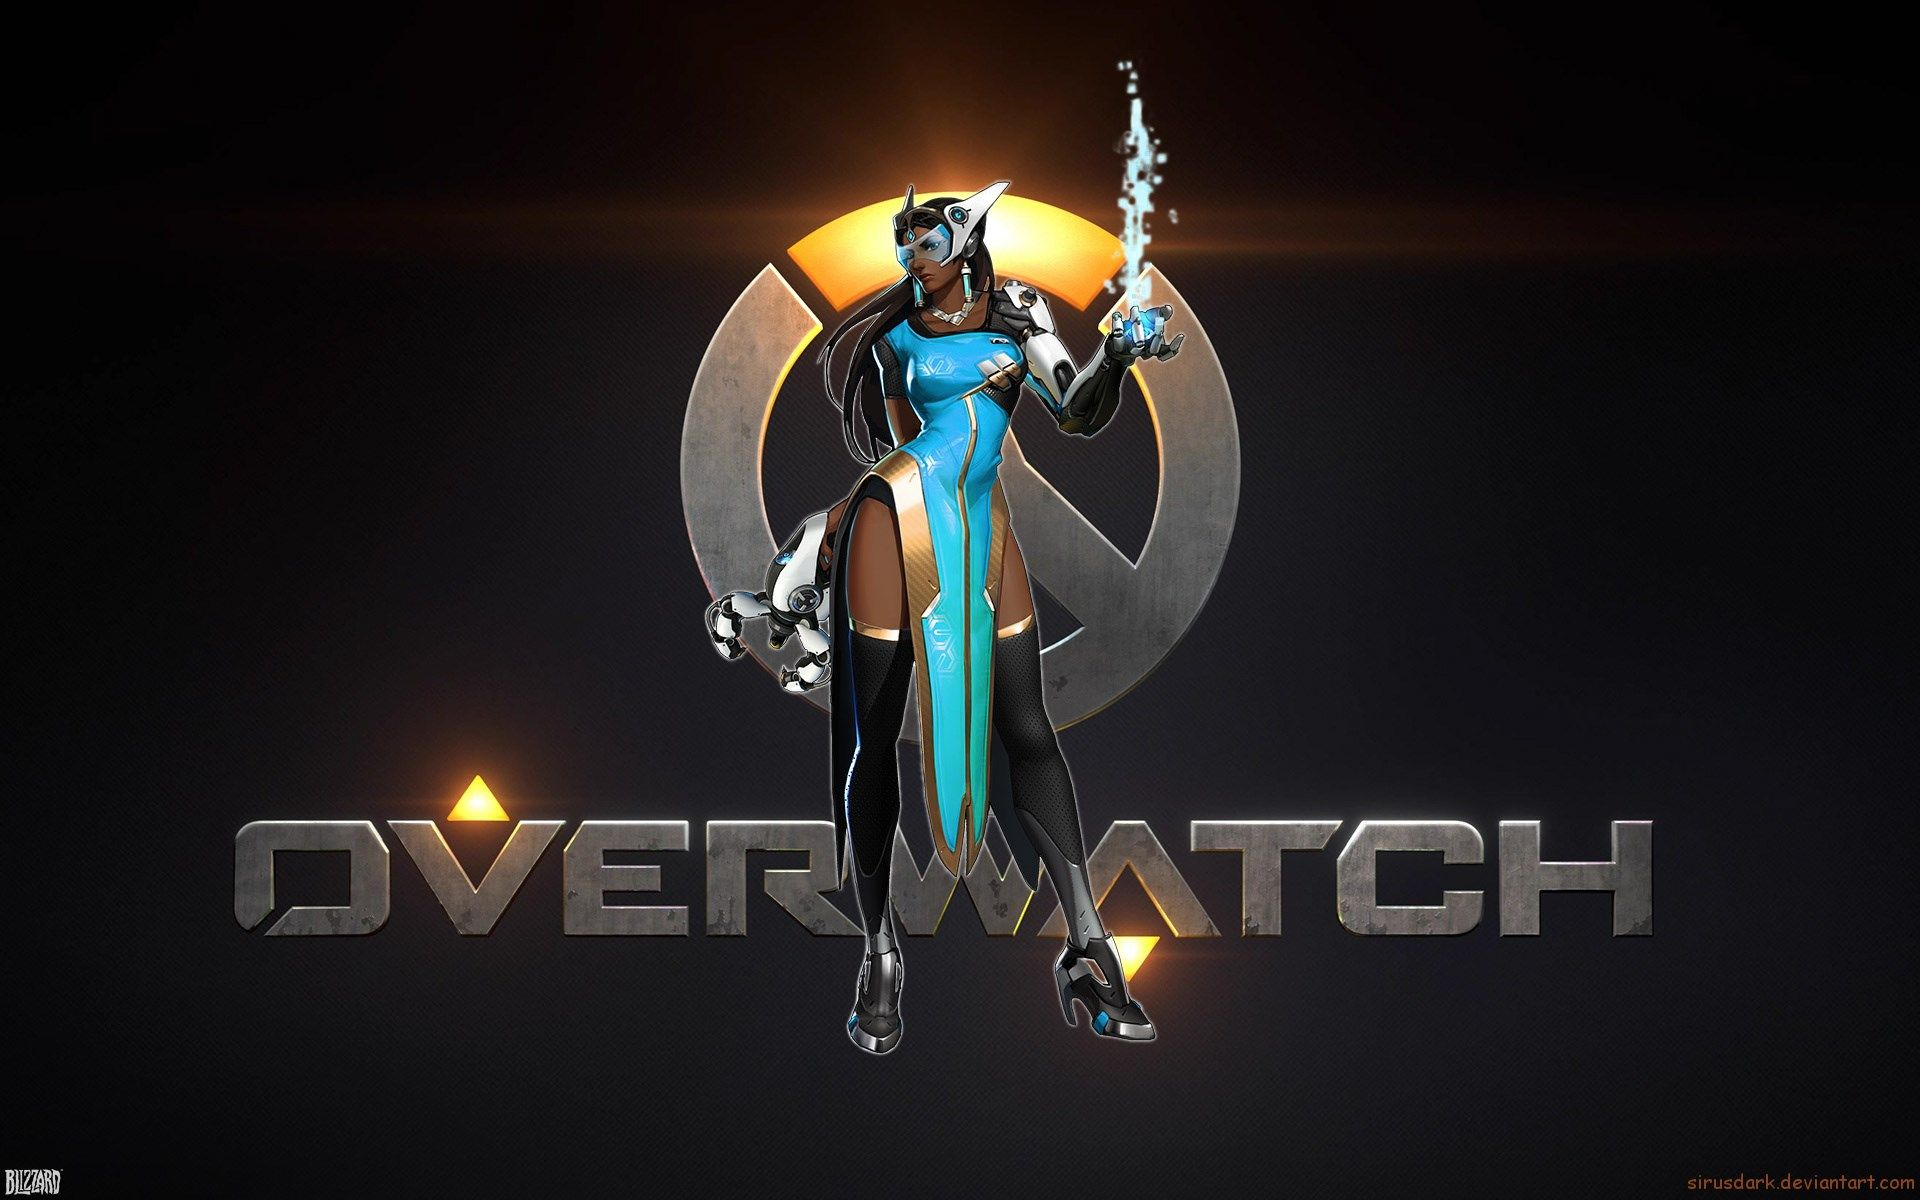 overwatch wallpaper full hd colden grant 1920x1200 gogolmogol